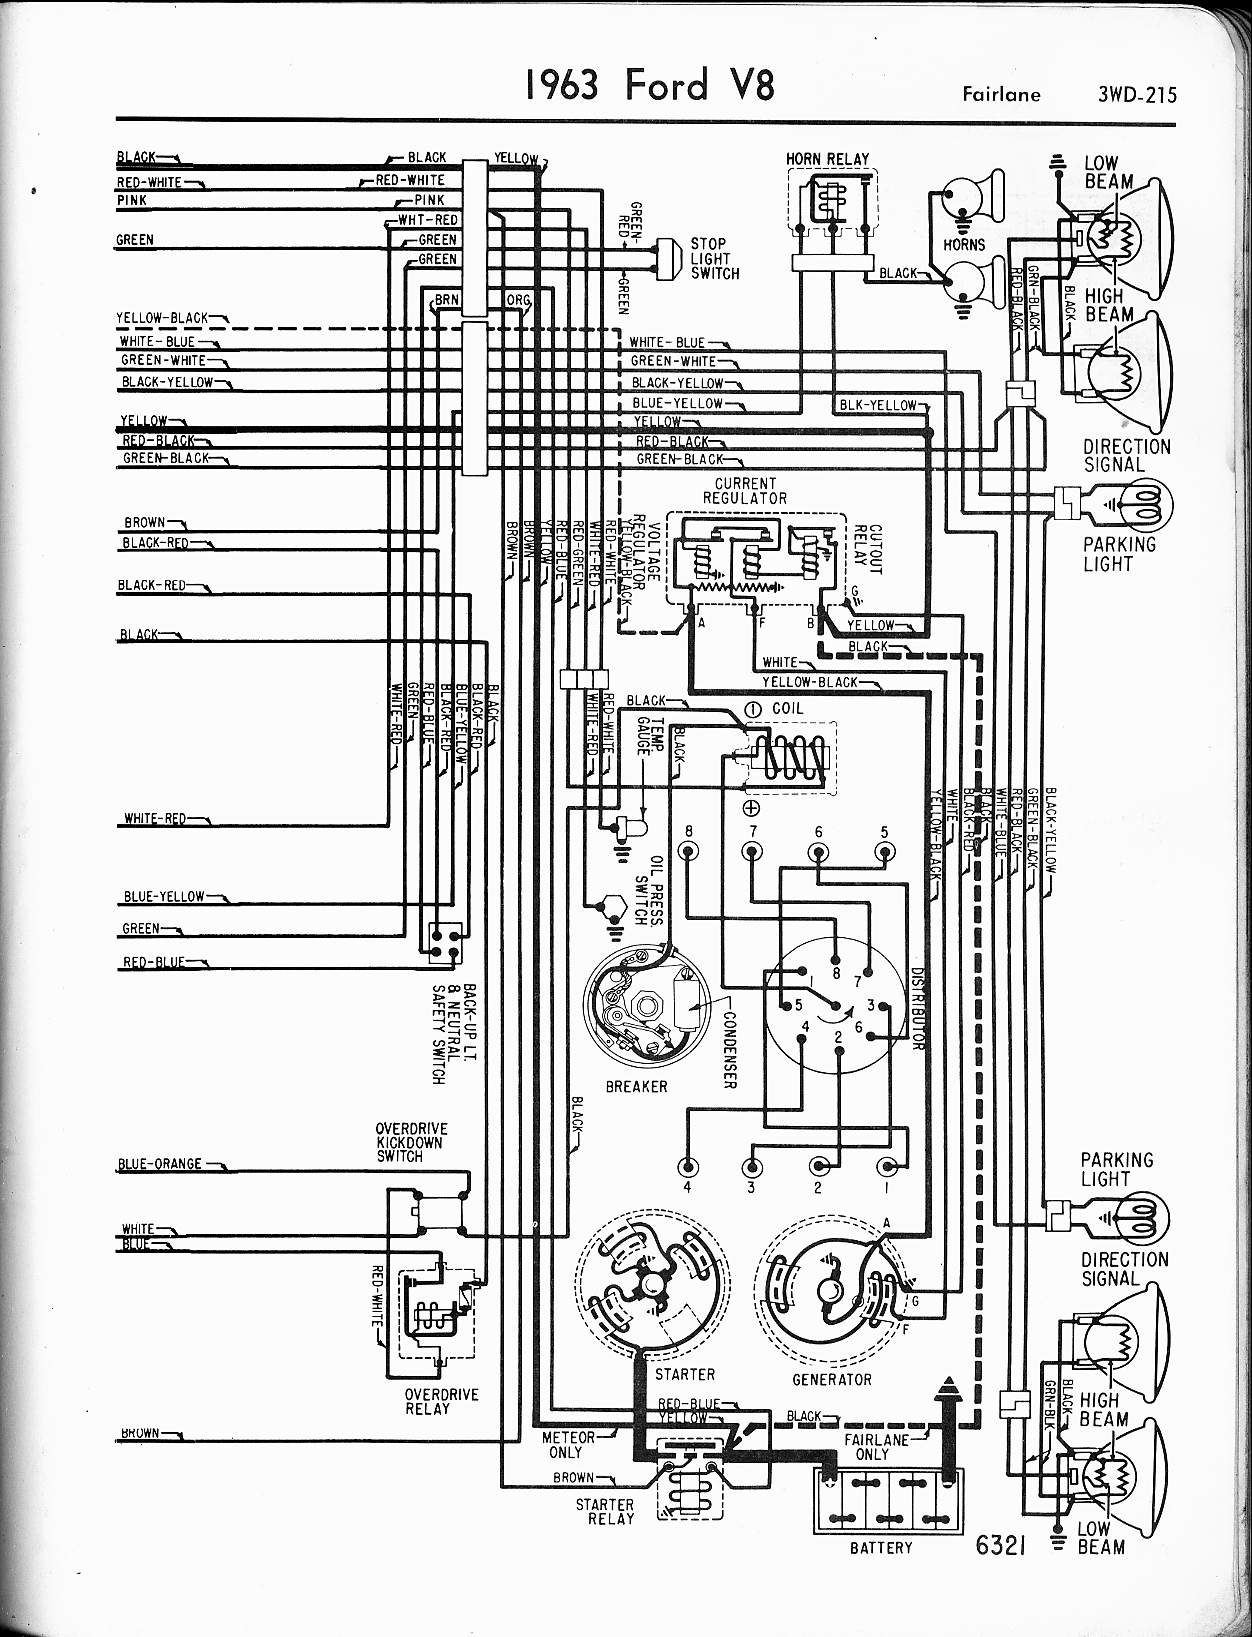 MWire5765 215 57 65 ford wiring diagrams ford car wiring diagrams at bayanpartner.co